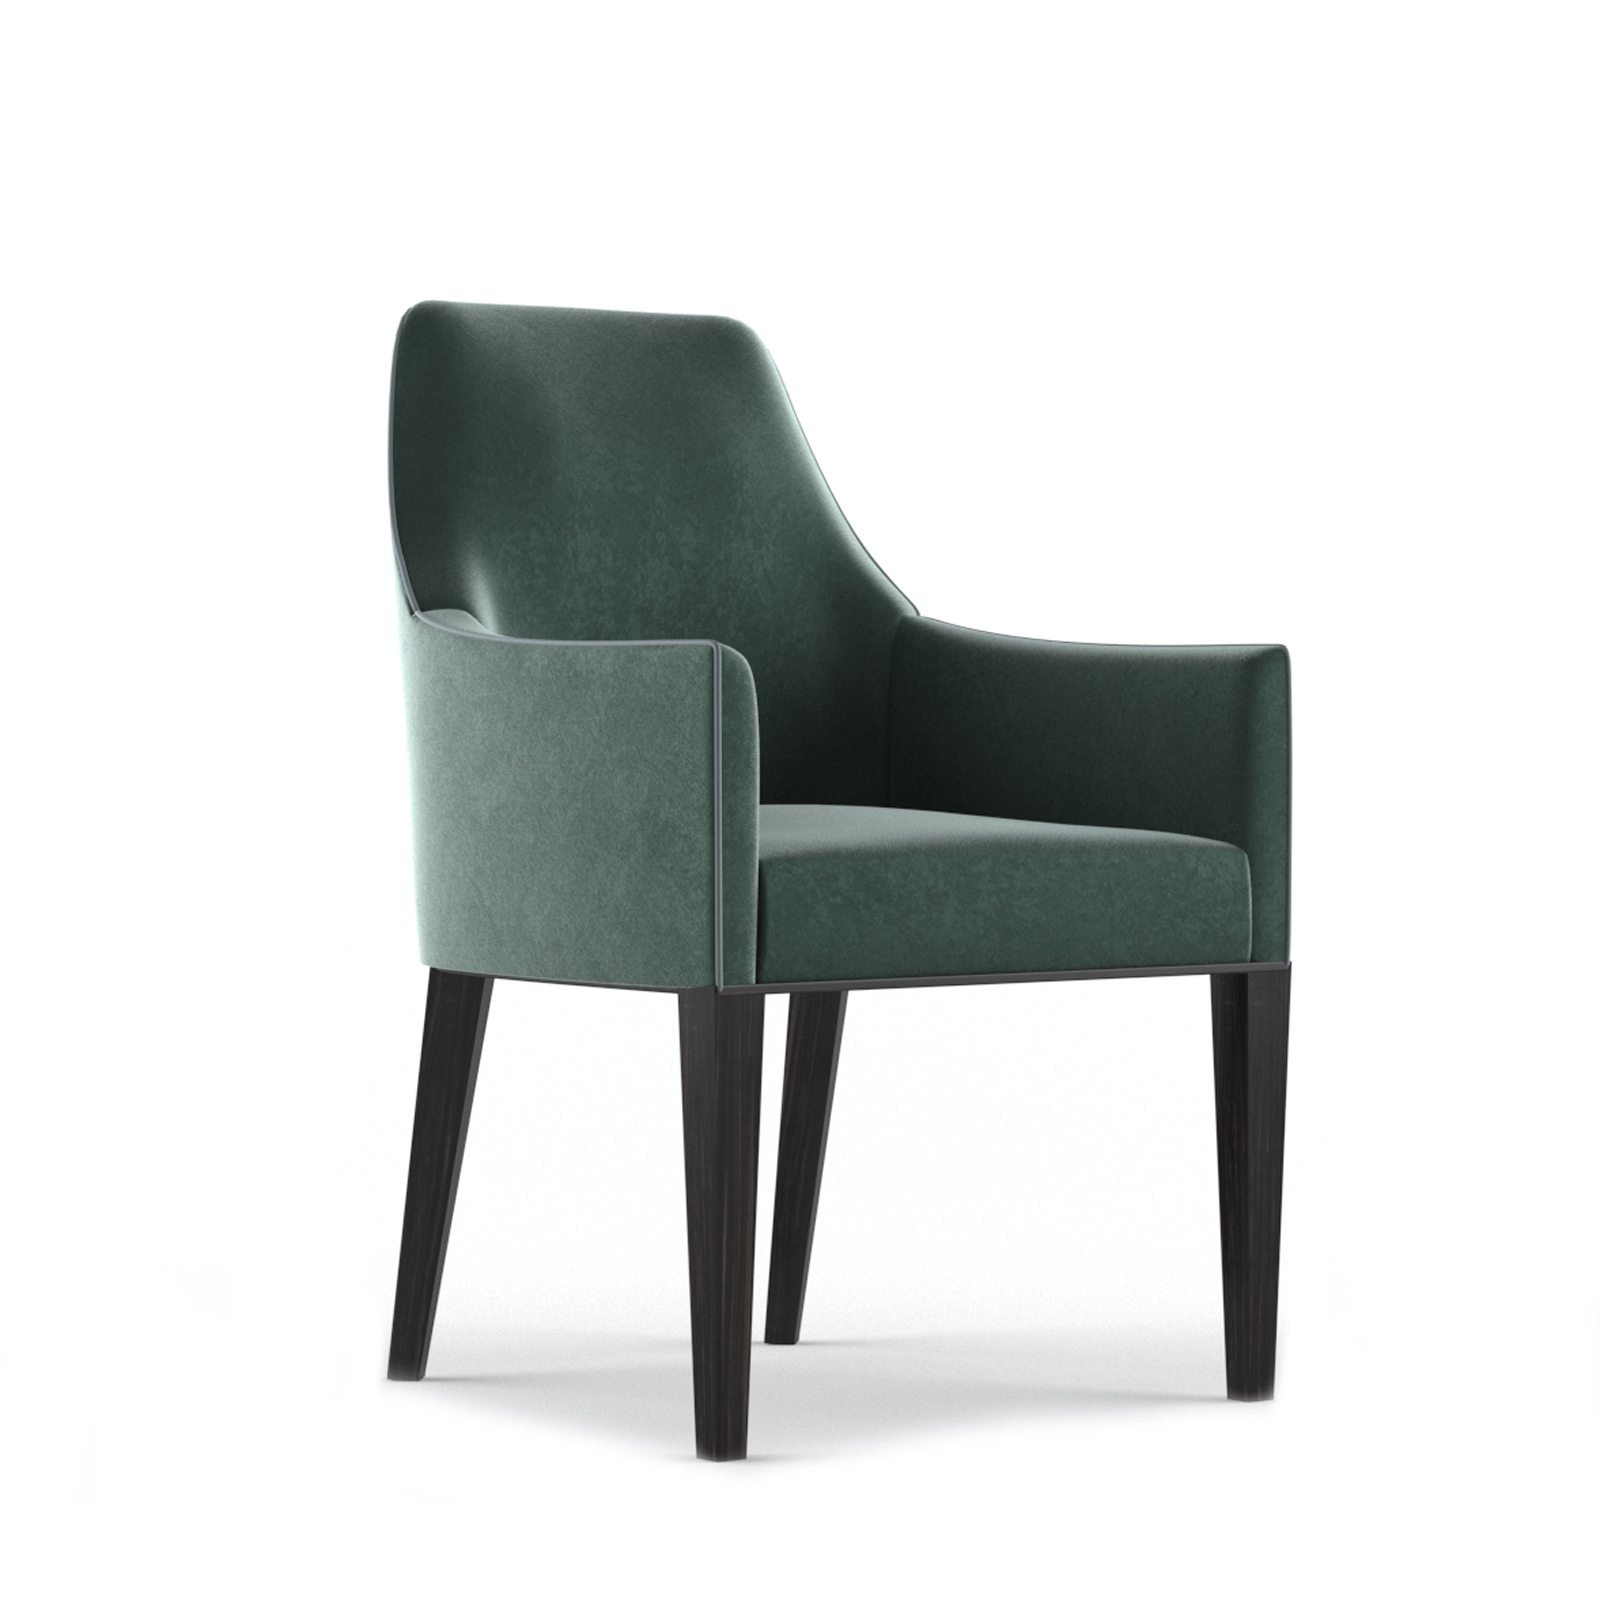 Balfour-Carver-Chair-by-Bonham-&-Bonham-11